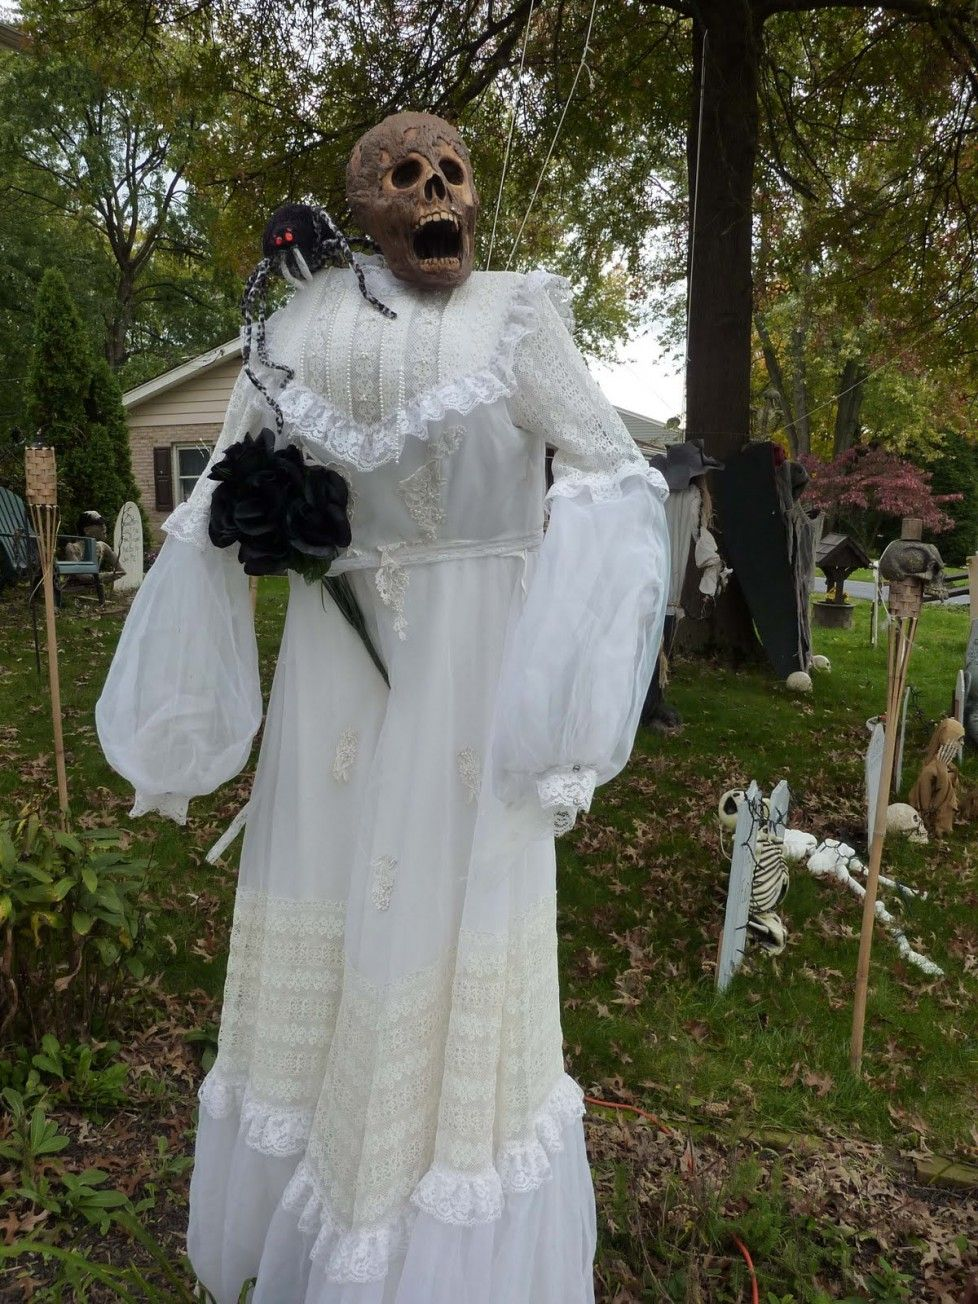 Halloween Yard Inspiration Halloween Decorations For Doors - Homemade Halloween Decorations